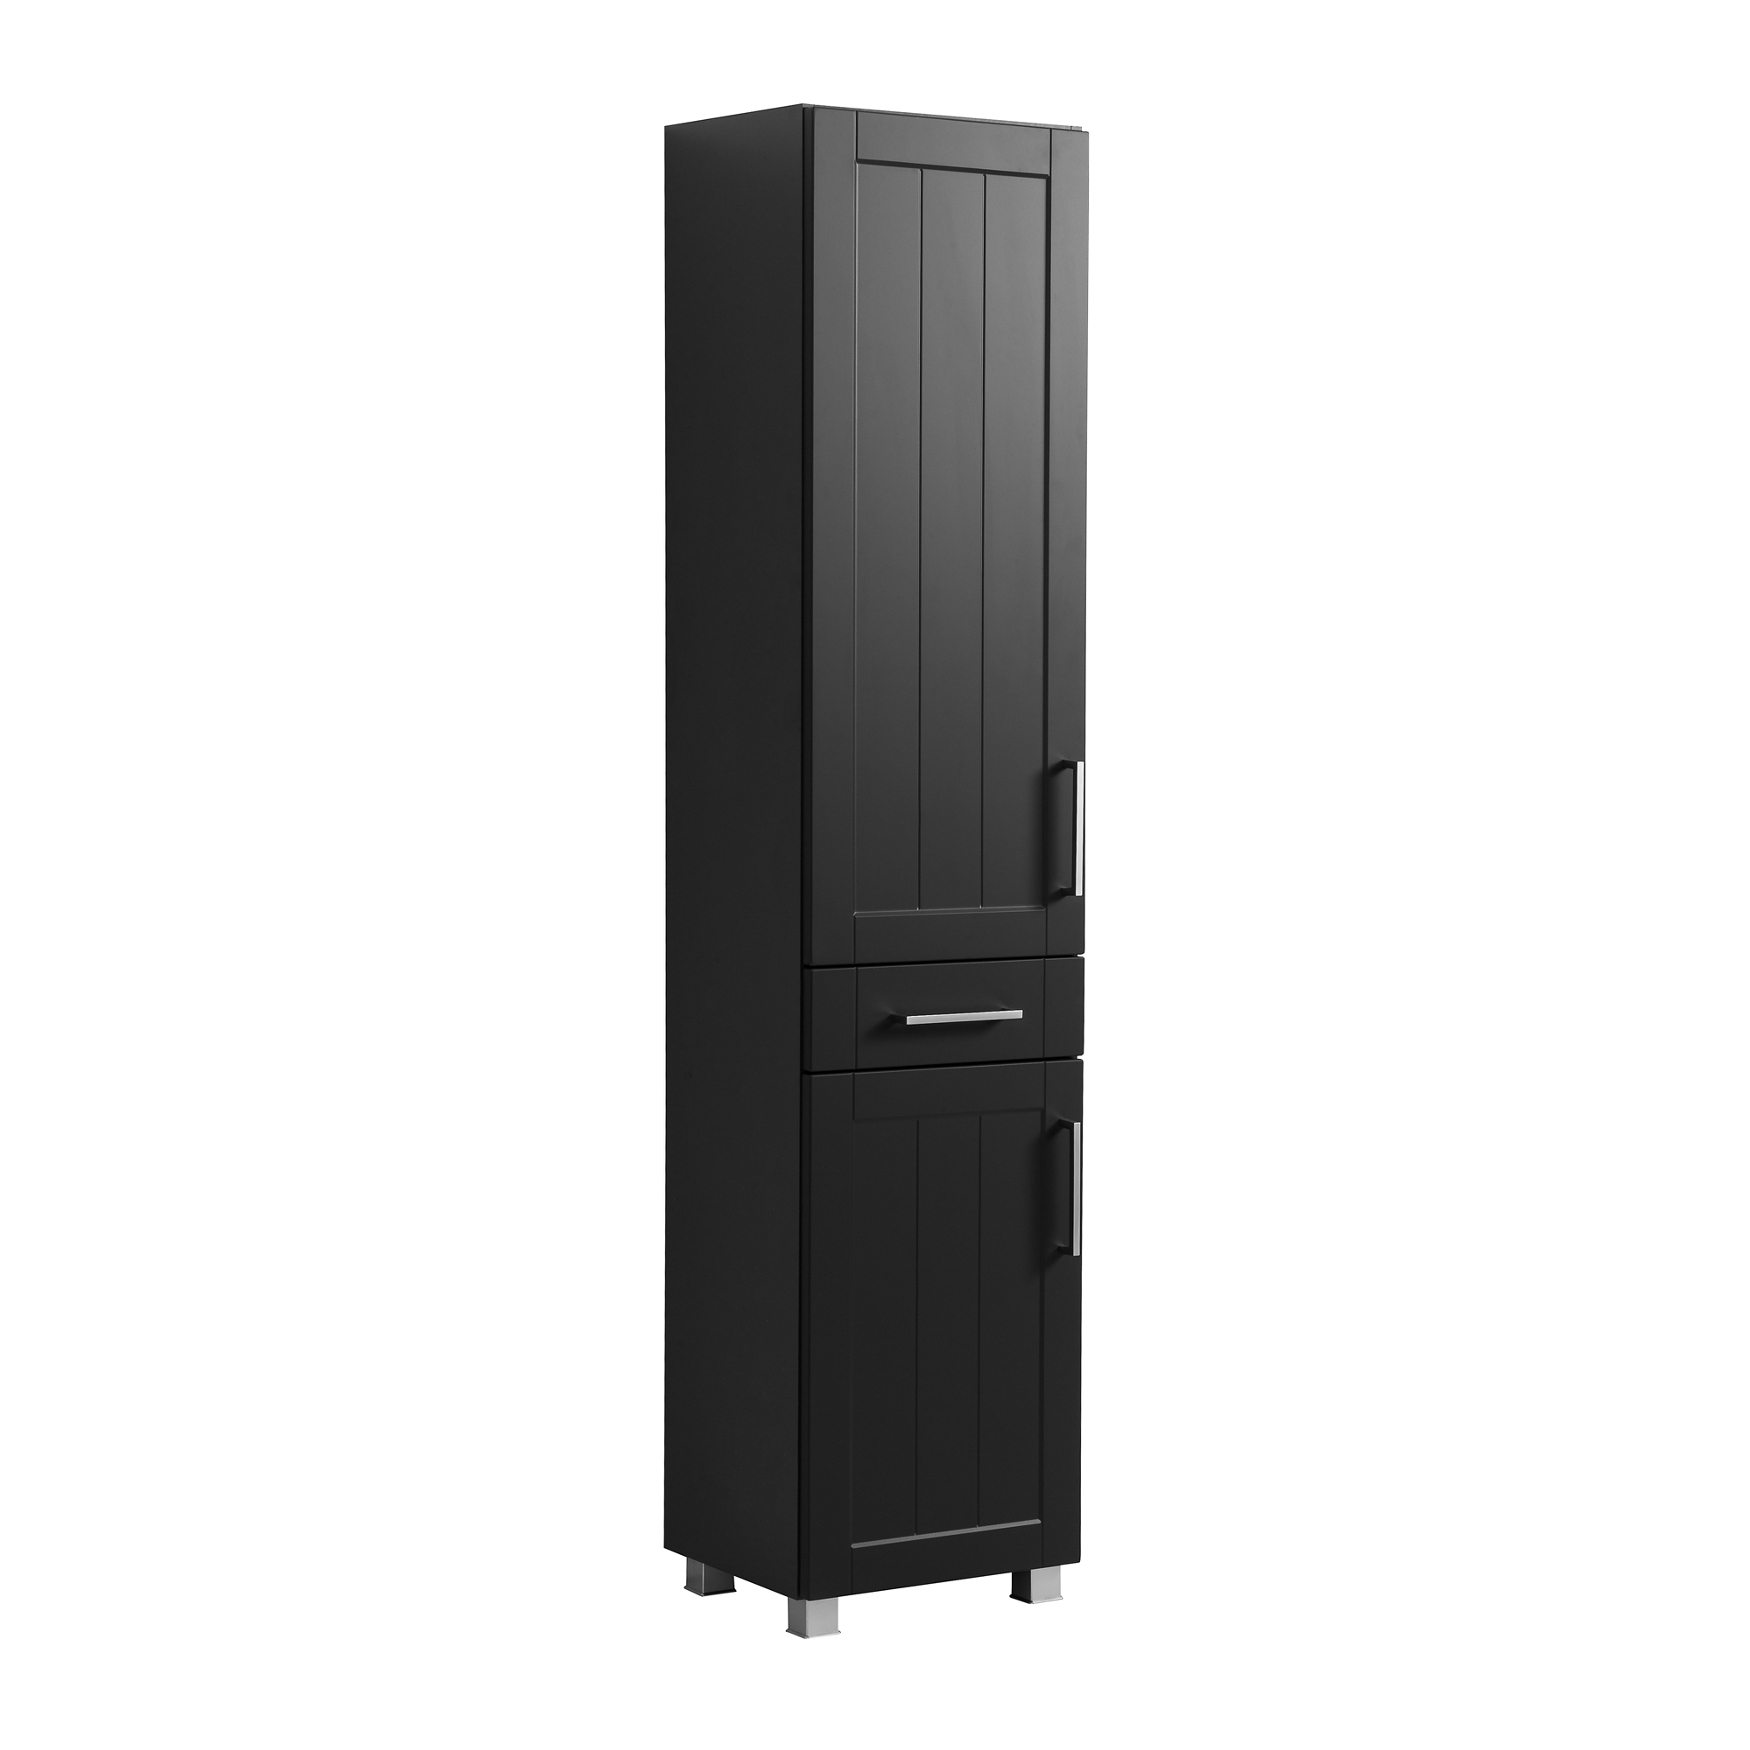 bad hochschrank barolo 2 t rig 1 schublade 40 cm breit grau matt ebay. Black Bedroom Furniture Sets. Home Design Ideas